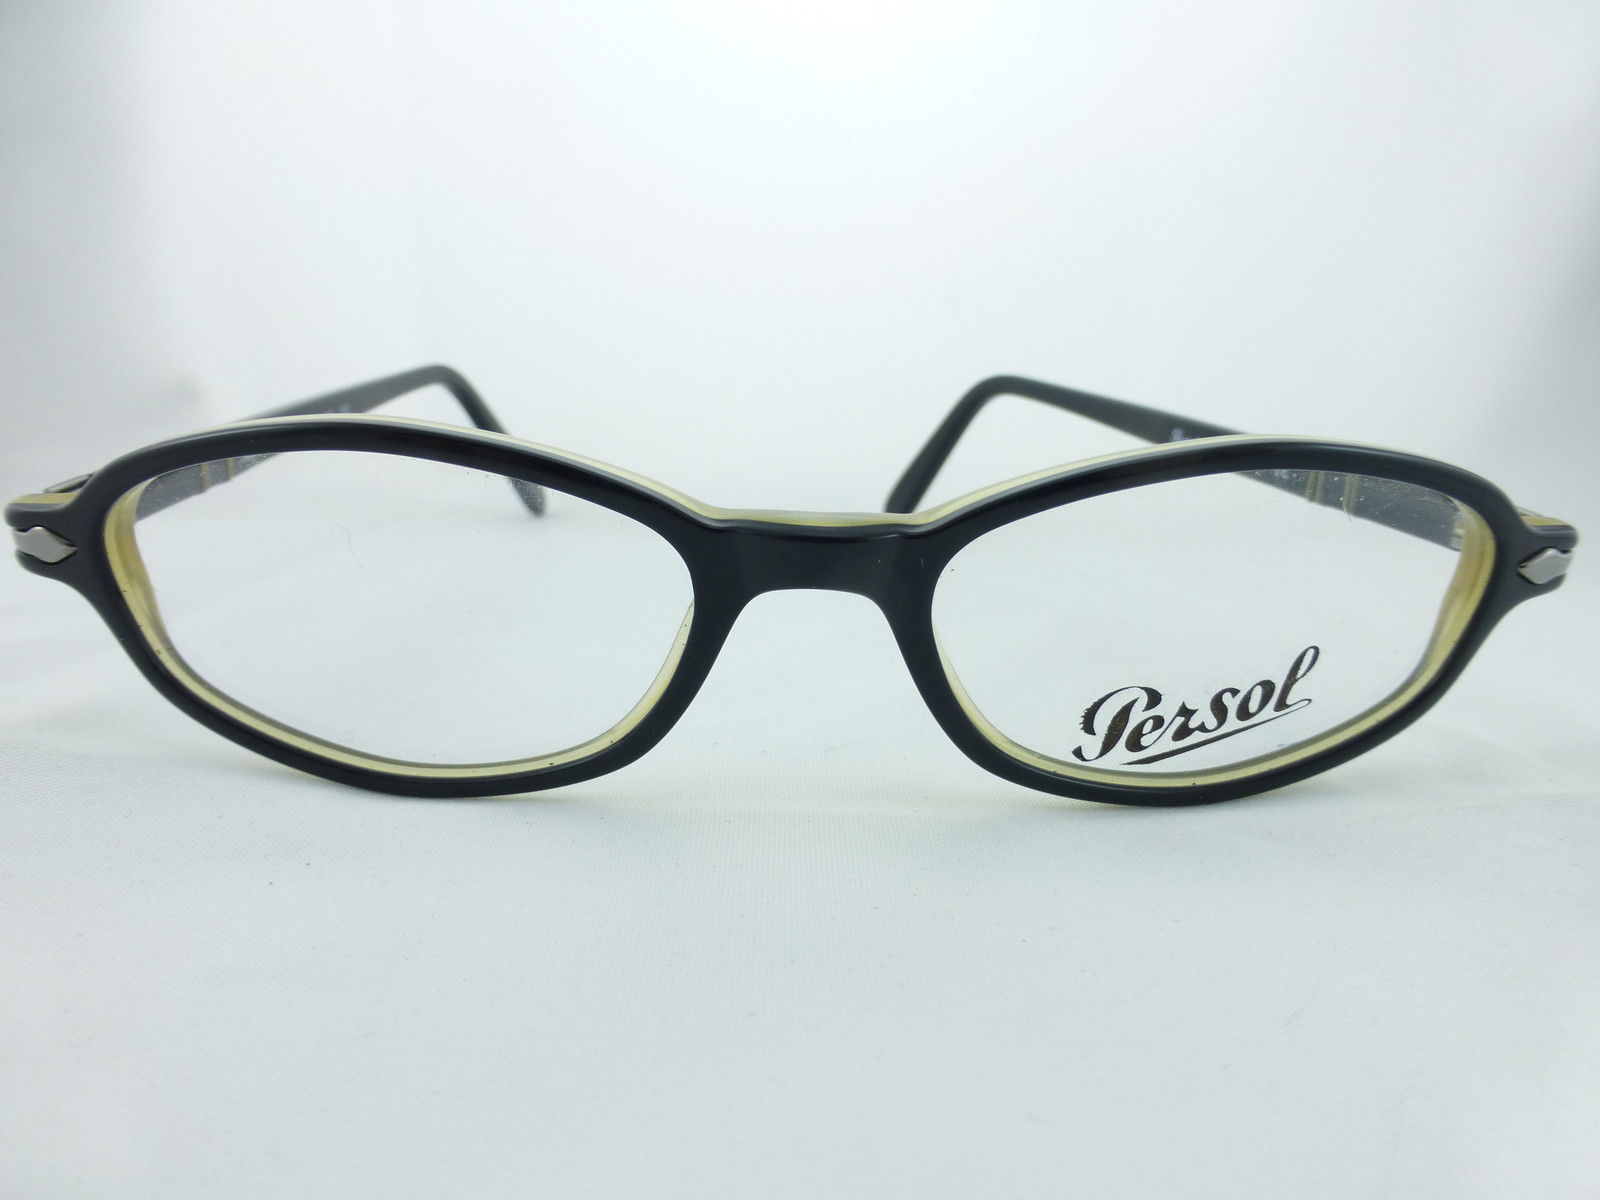 persol eyeglasses nyc. Black Bedroom Furniture Sets. Home Design Ideas